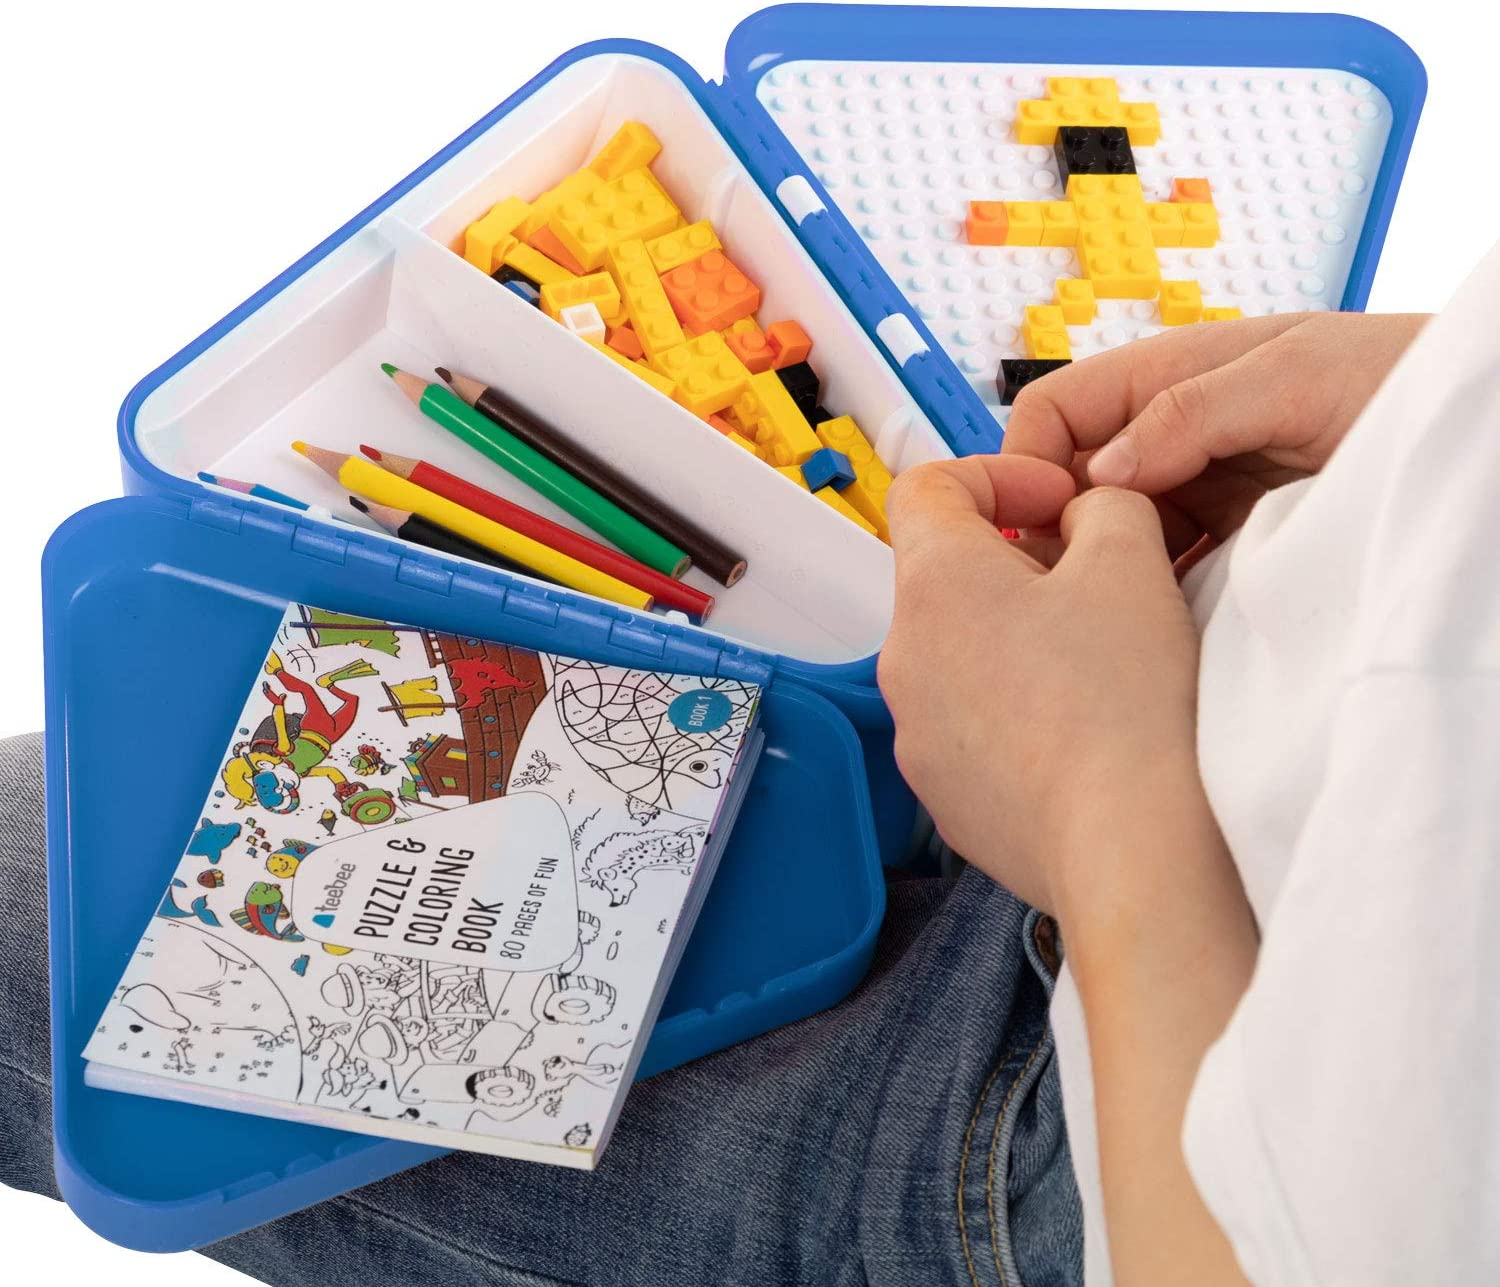 Included Bricks Activity Tray Table for Car Seat Blue Play w Kids Travel Toy Box teebee Puzzle Book /& Colouring Pens Boys /& Girls Snack Storage Suitcase for Baby Tools Plane /& Stroller